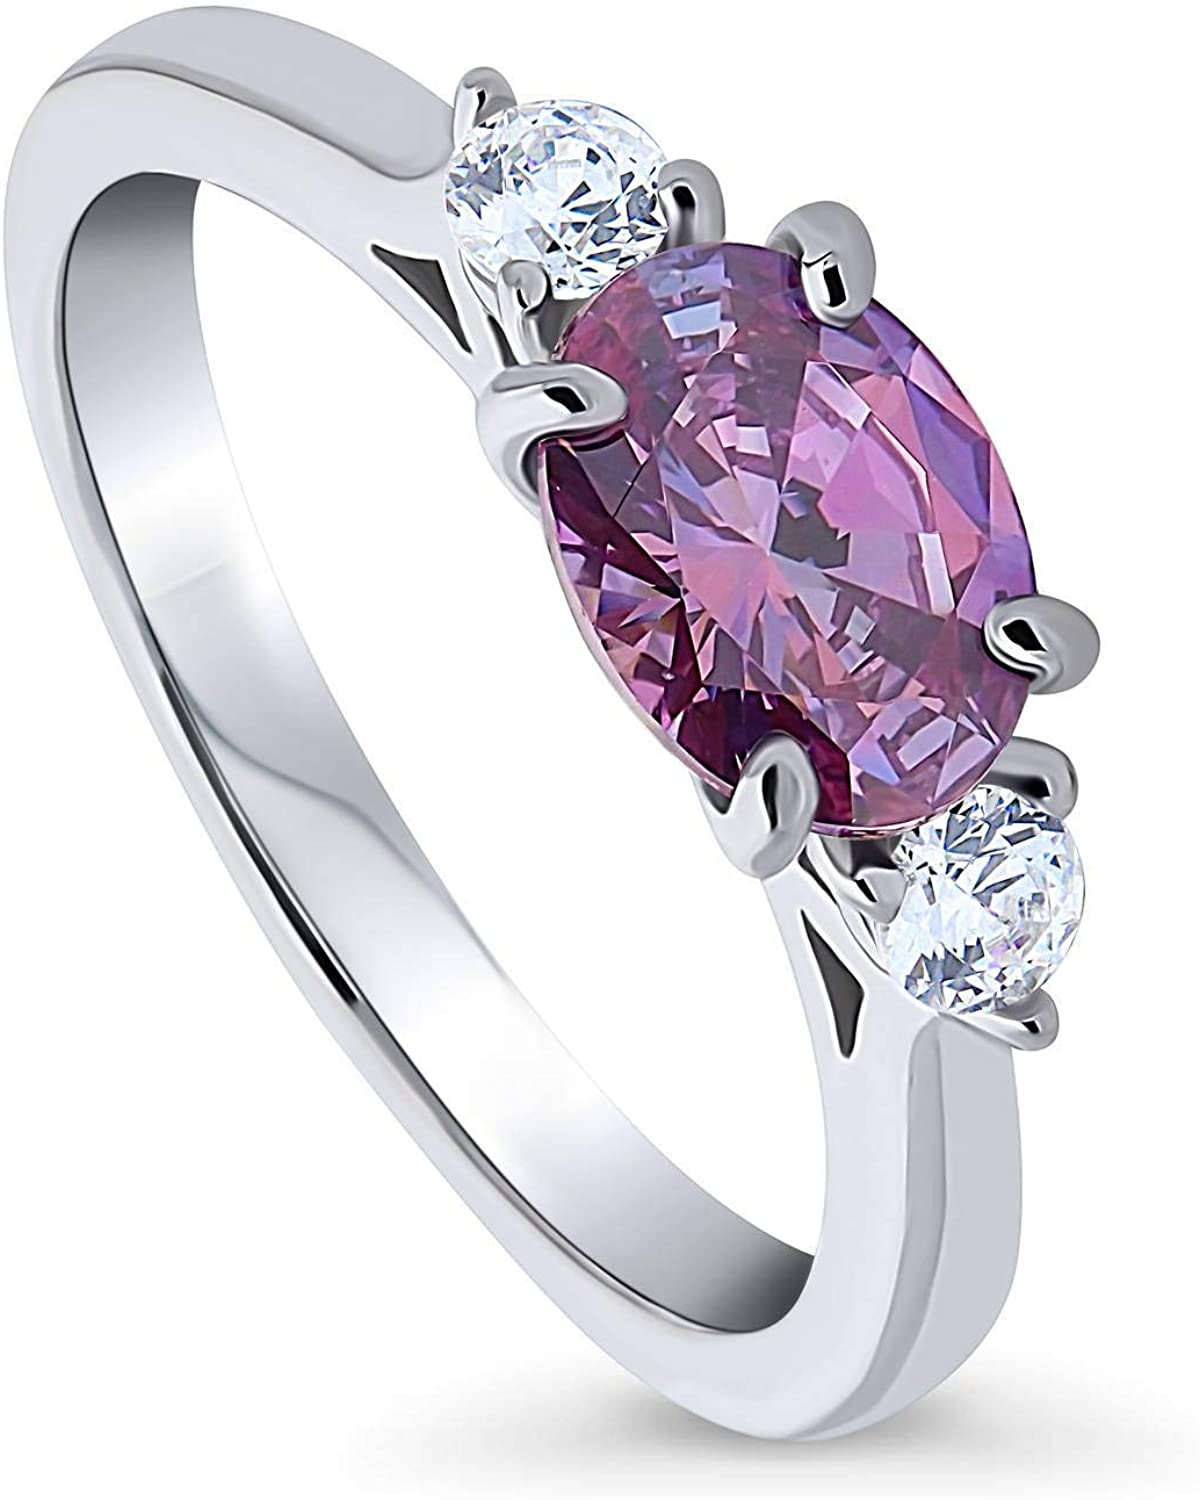 BERRICLE Rhodium Plated Sterling Silver 3-Stone East-West Promise Ring Made with Swarovski Zirconia Purple Oval Cut